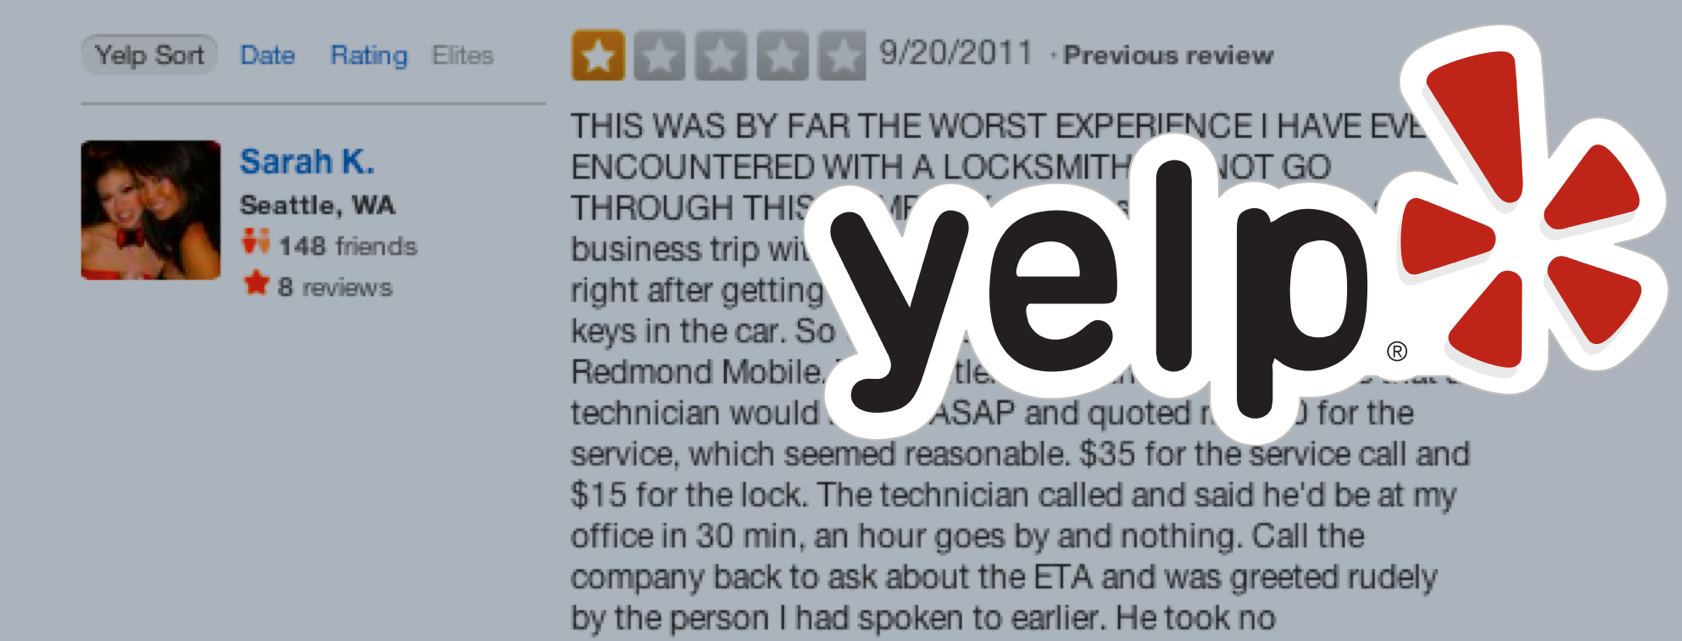 No, Yelp's Star Ratings Don't Make It Liable For Bad Reviews